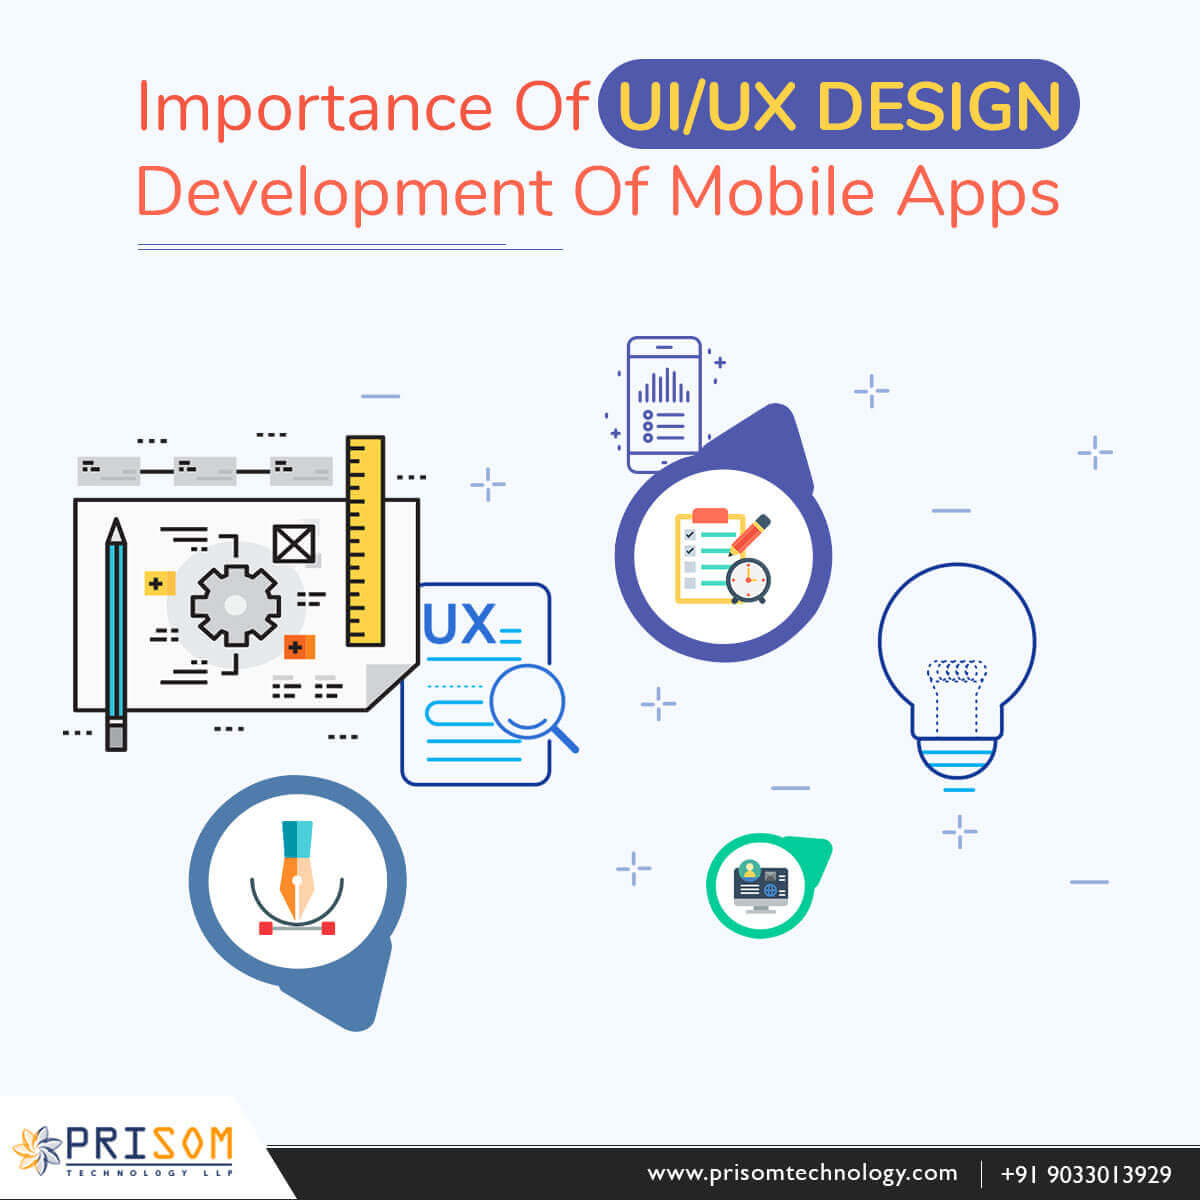 UIUX design development